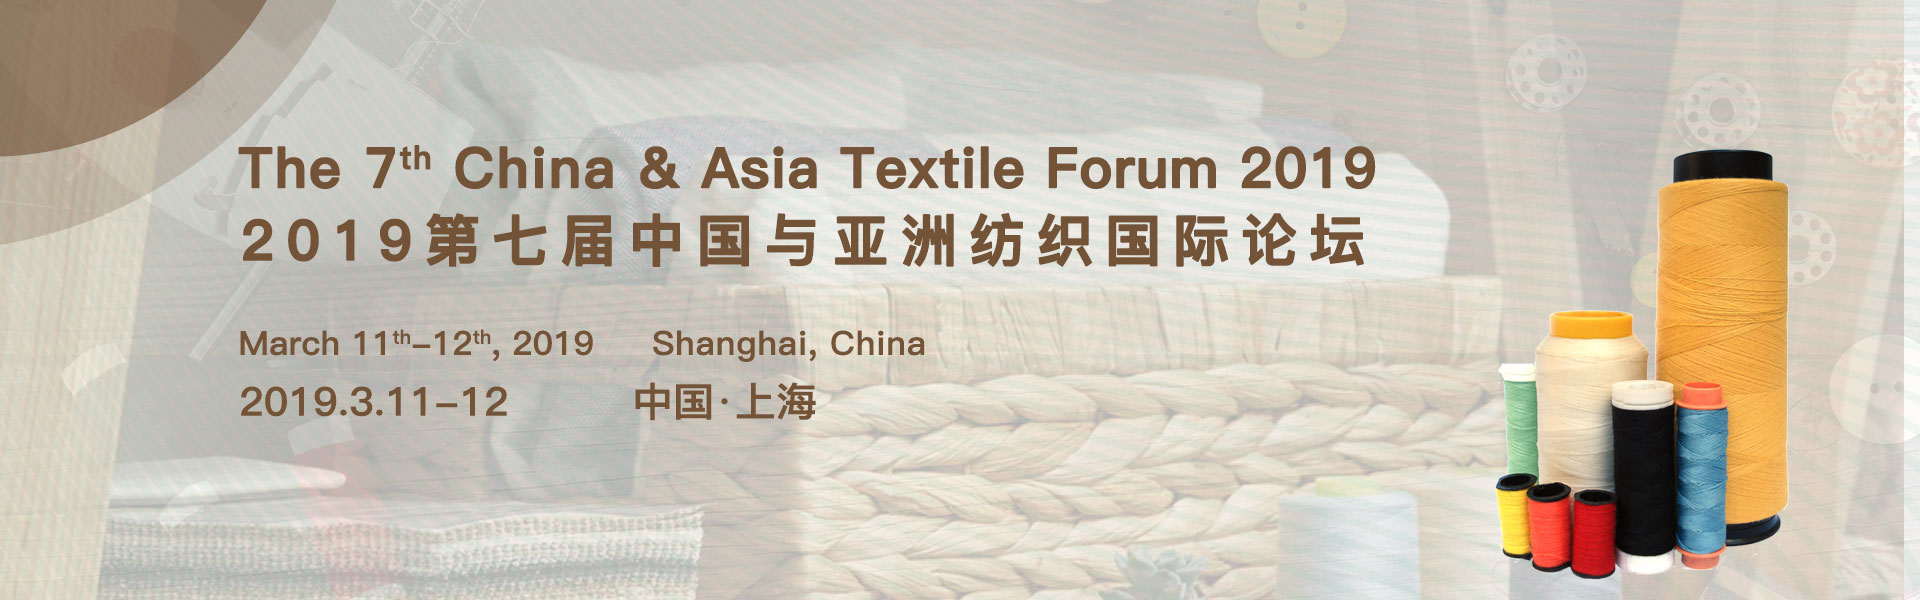 The 7th China & Asia Textile Forum